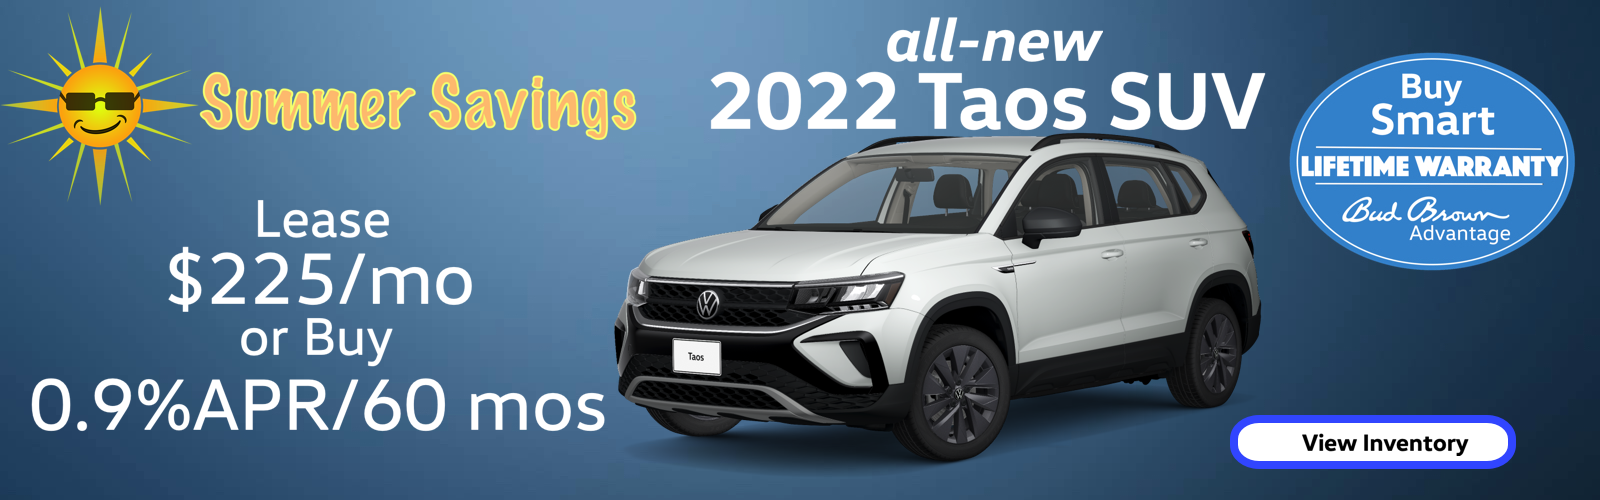 The all-new 2022 VW Taos SUV is here! $225 per month.